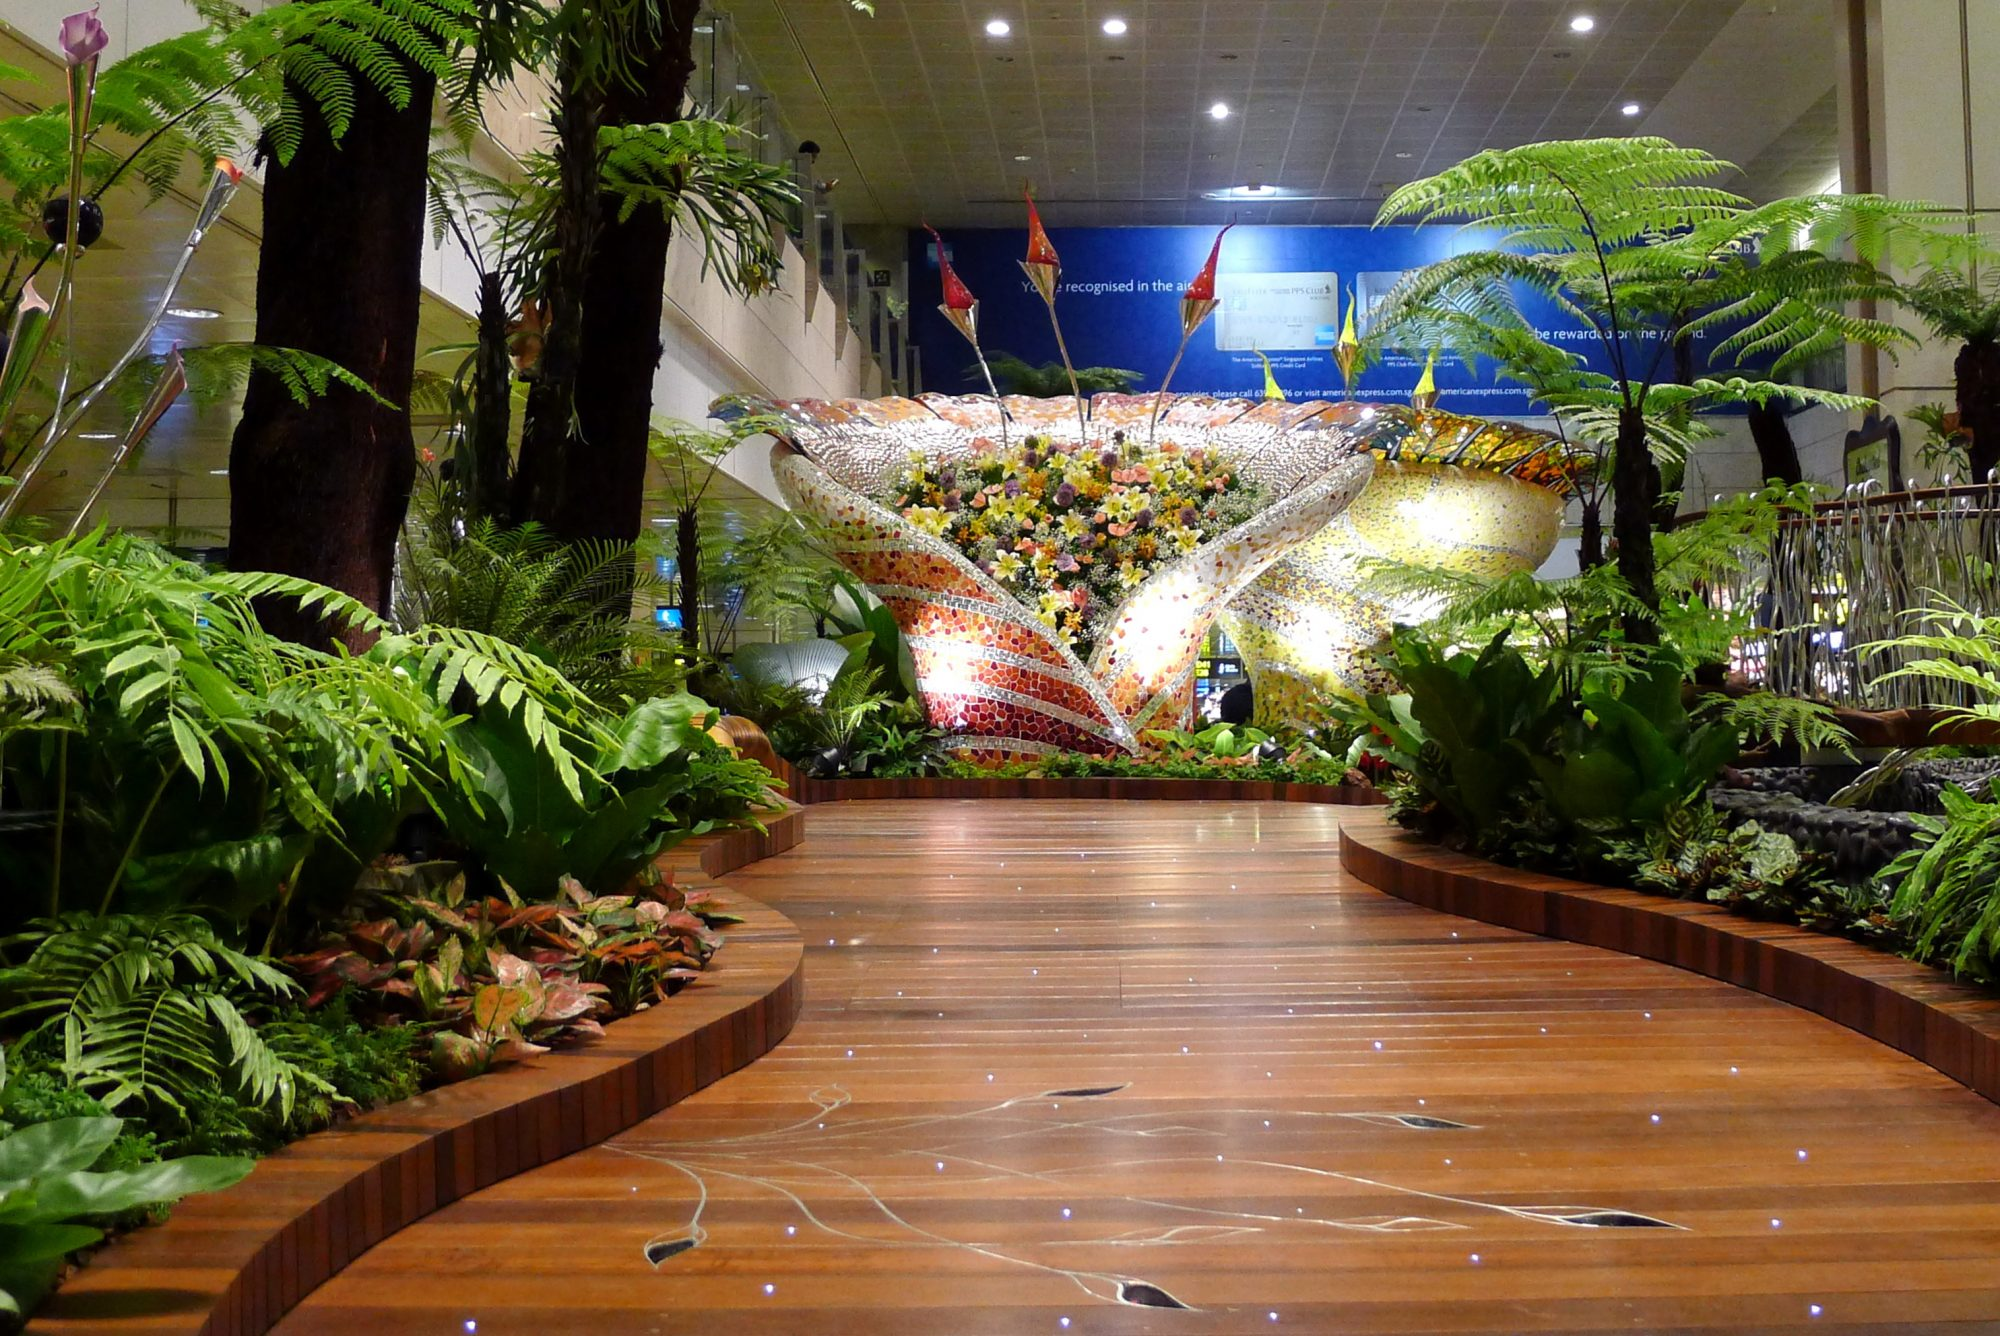 Changi International Airport, Singapore